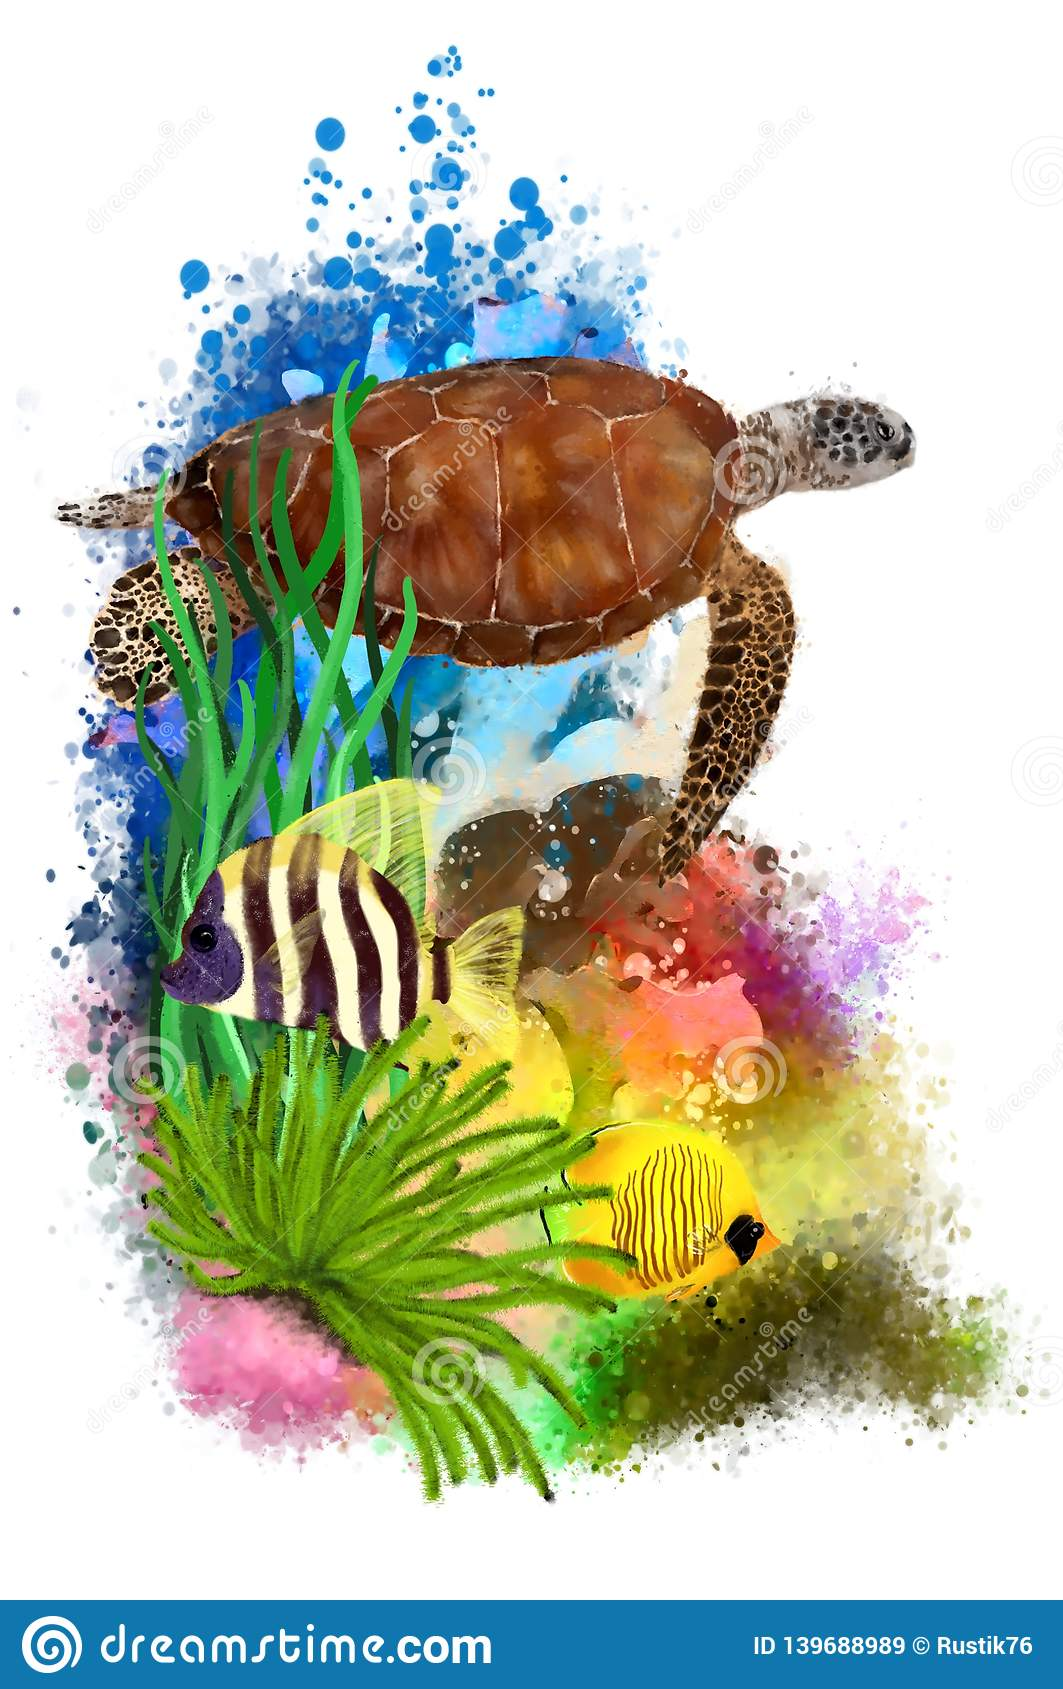 Tropical Fish Watercolor Png - Underwater Tropical World With A Turtle And Fish On An Abstract ...